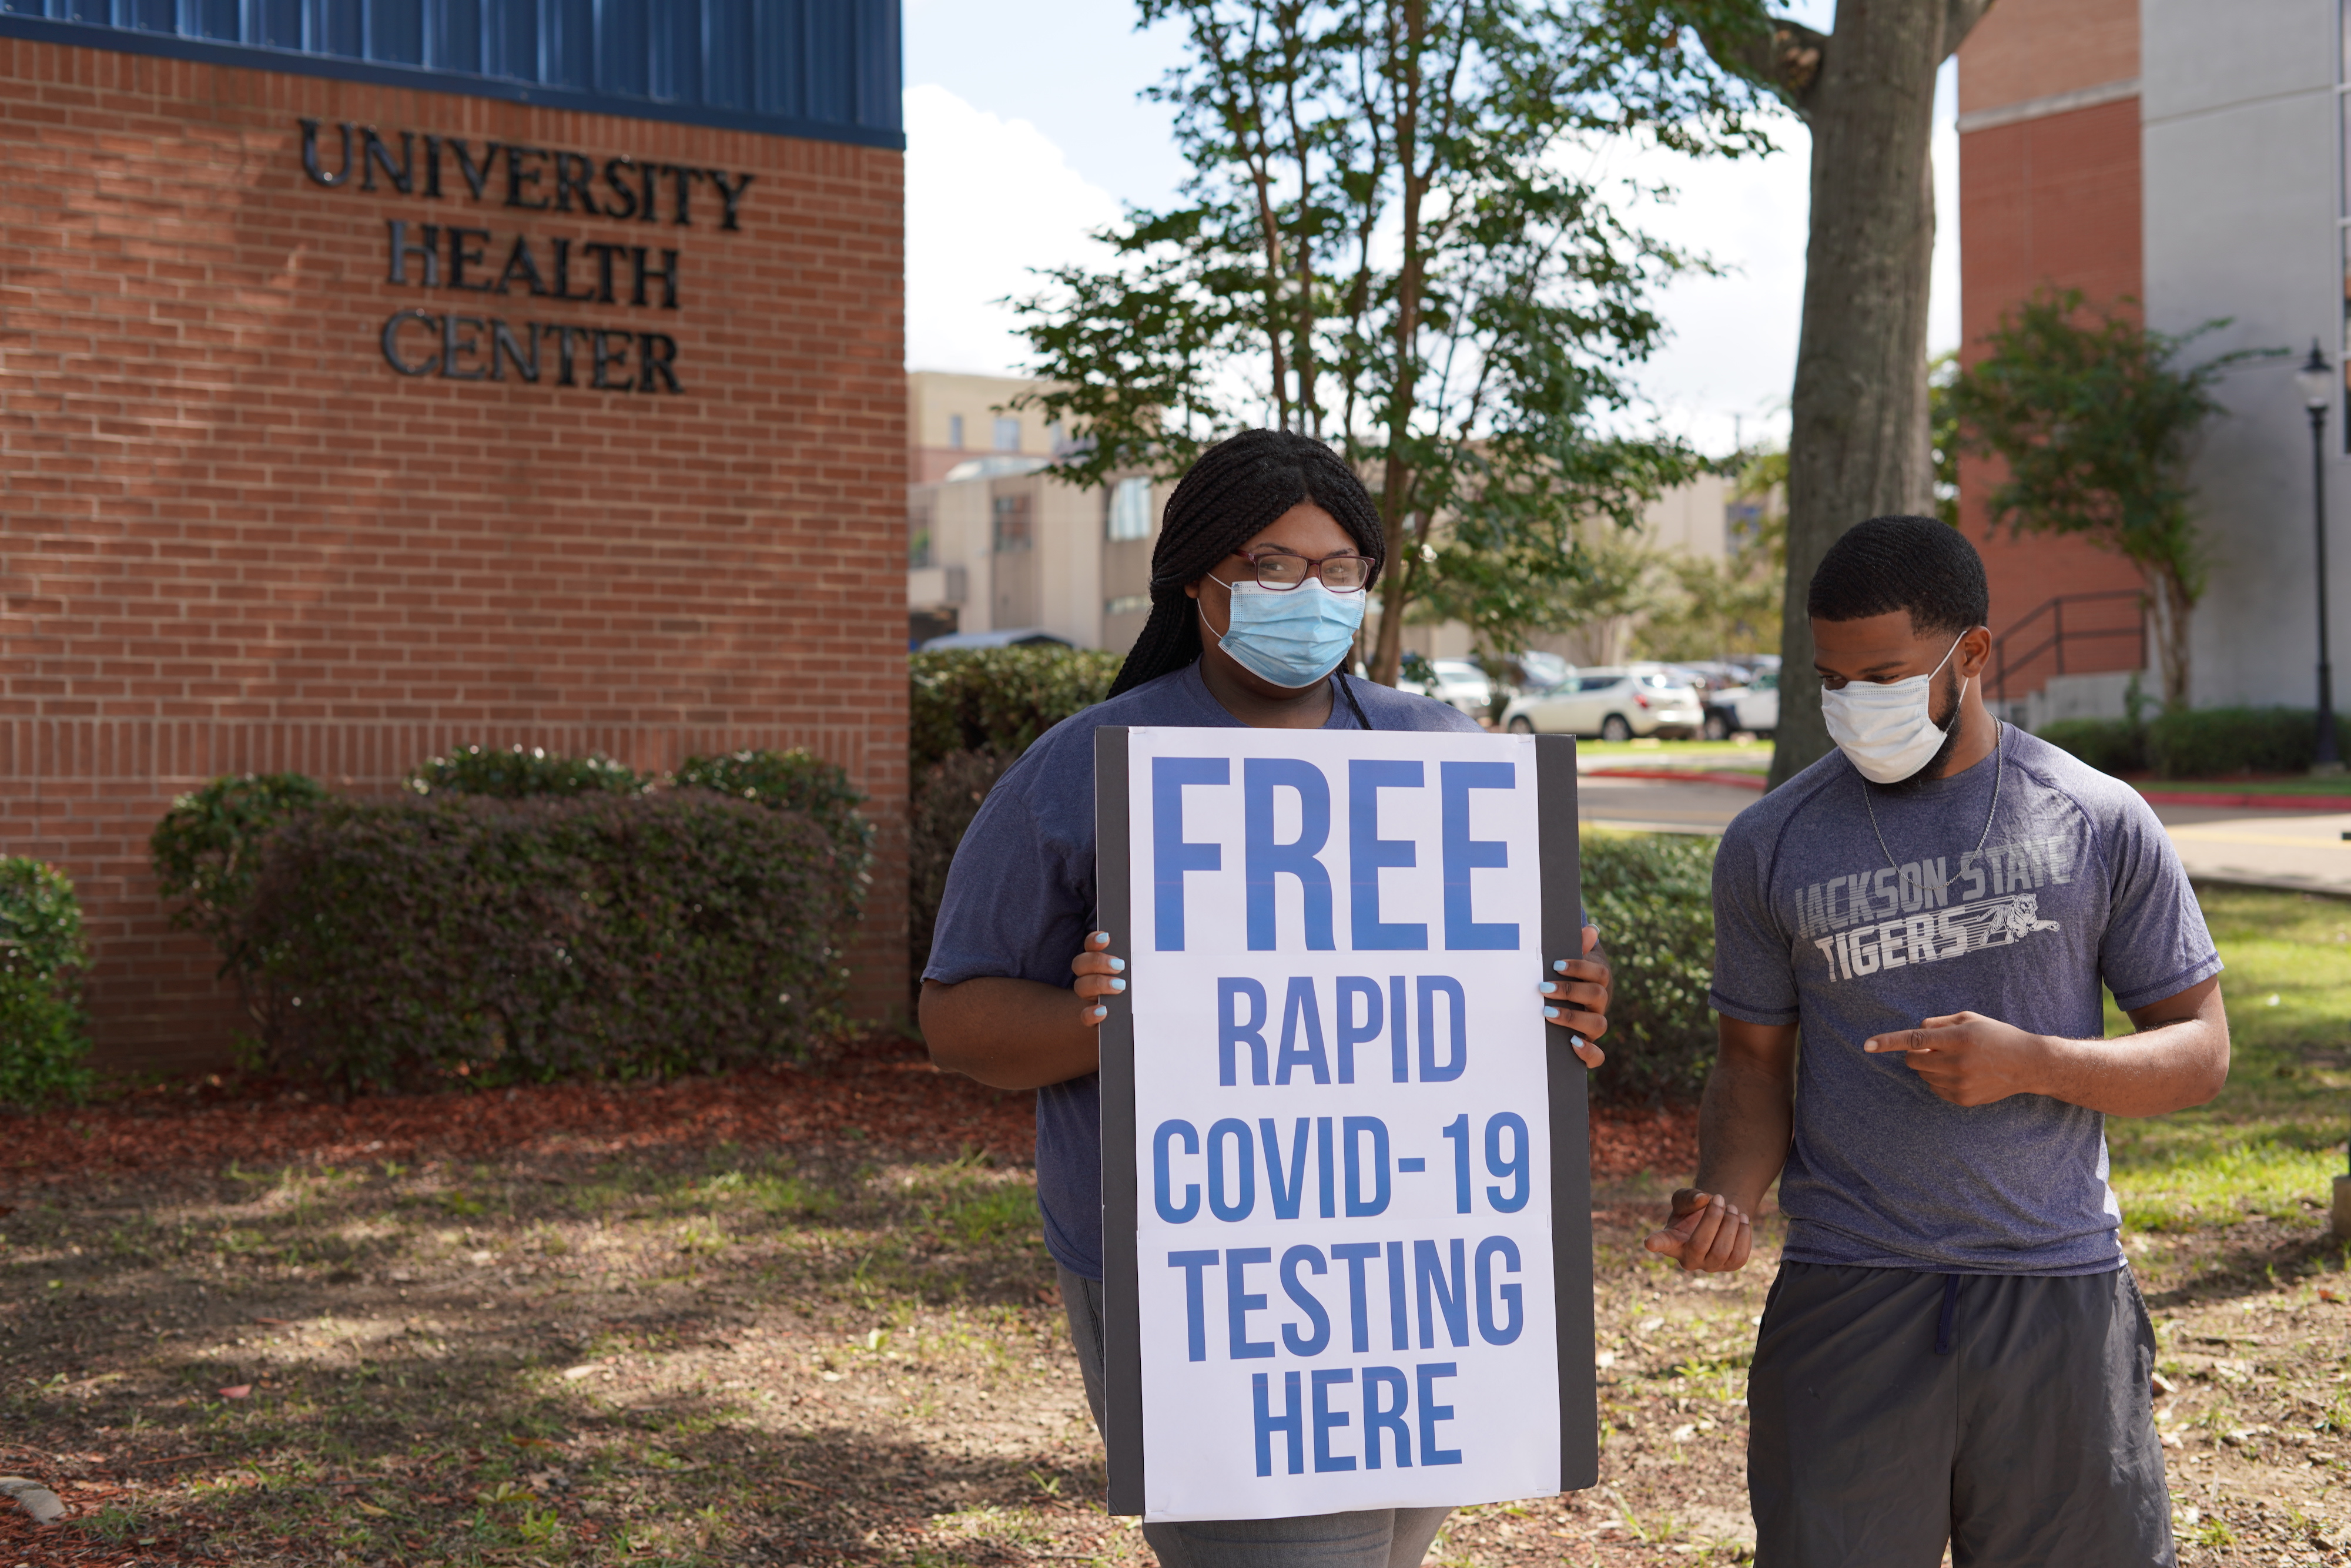 Free rapid testing was available for students as they registered. (Photo courtesy of Division of Student Affairs)